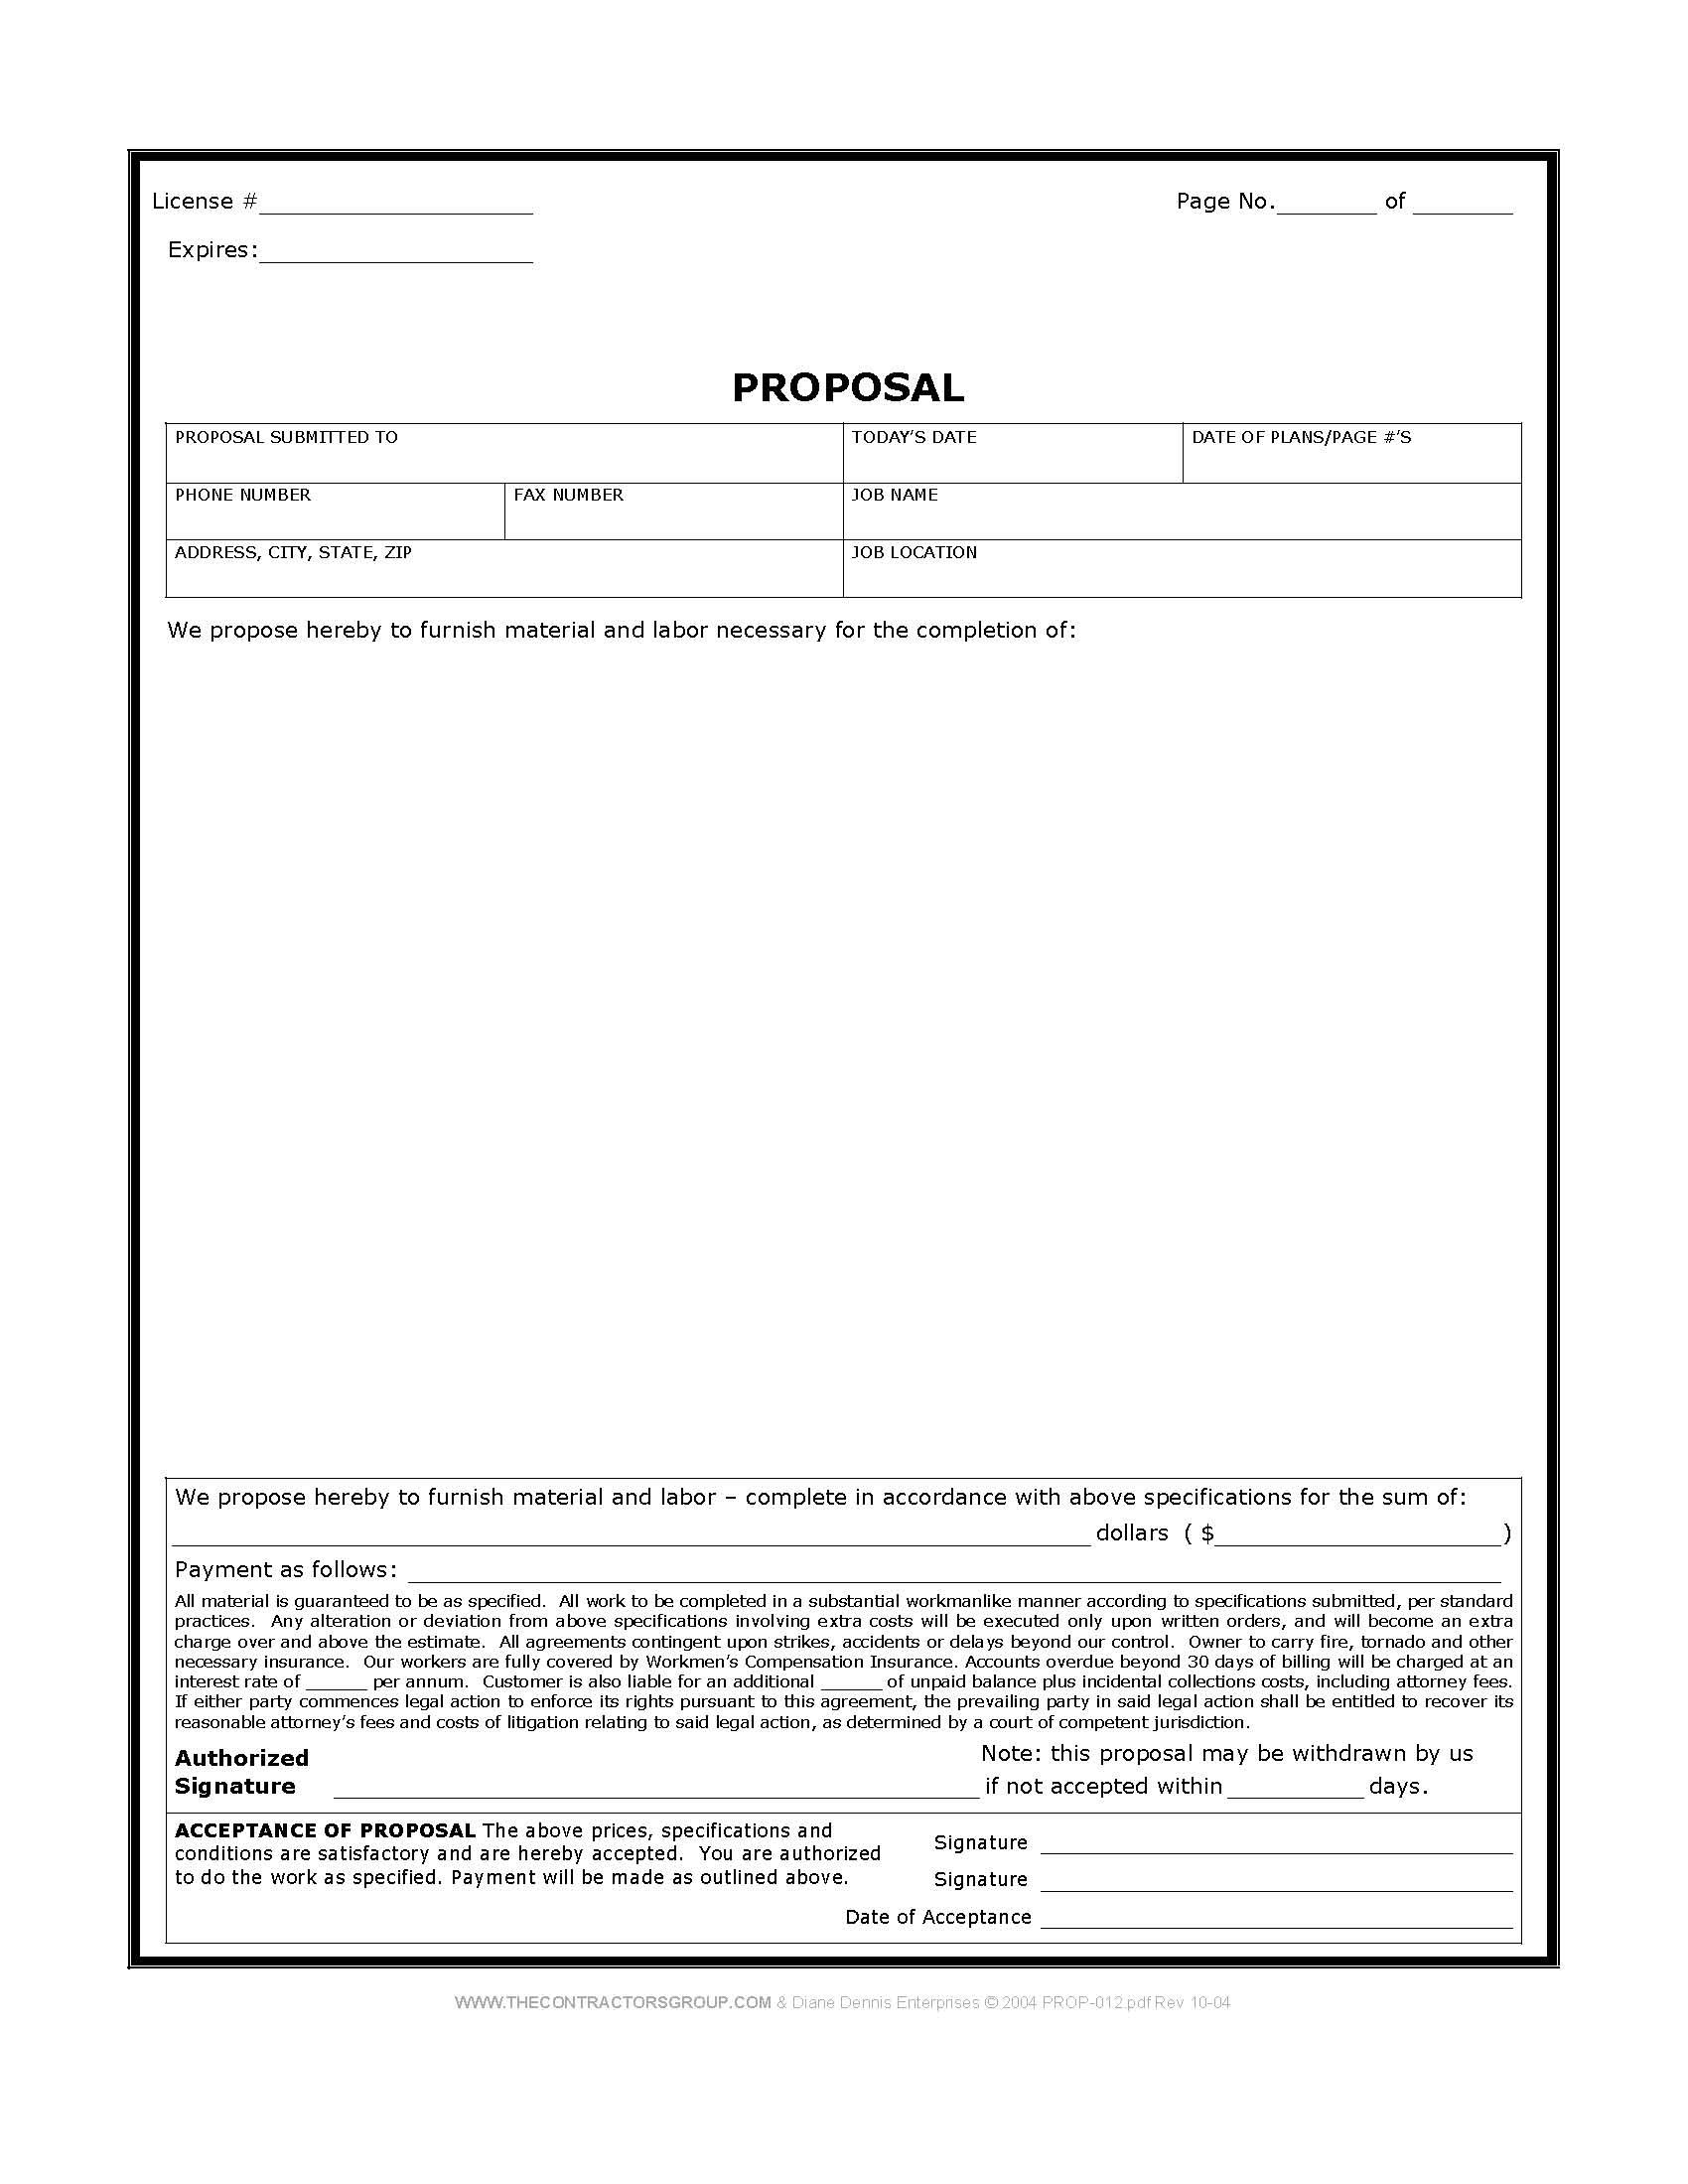 Free Print Contractor Proposal Forms | Construction Proposal Form - Free Printable Proposal Forms